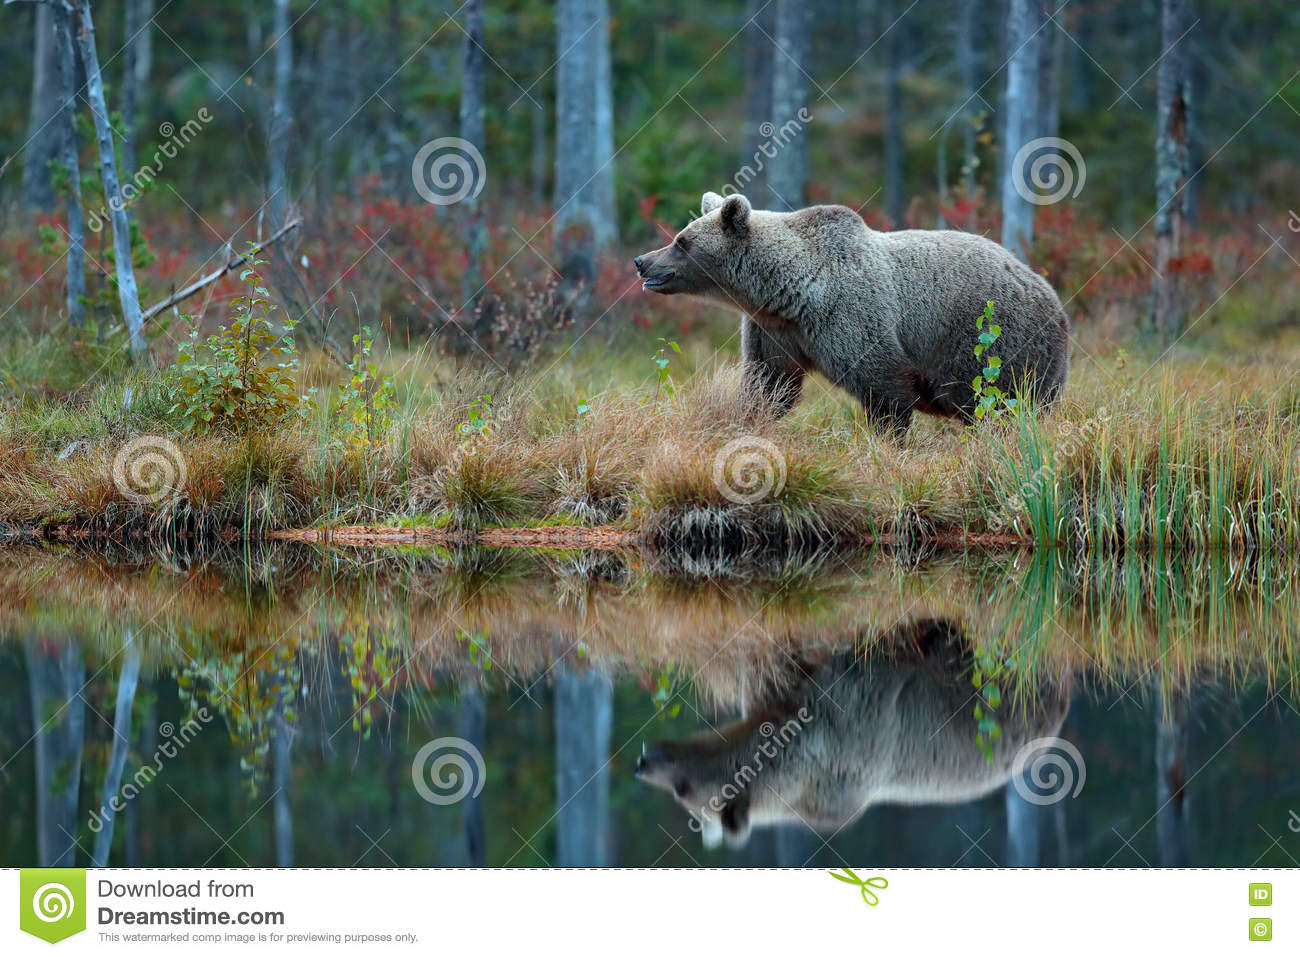 Big brown bear walking around lake in the morning sun. Dangerous animal in the forest. Wildlife scene from Europe. Brown bird in